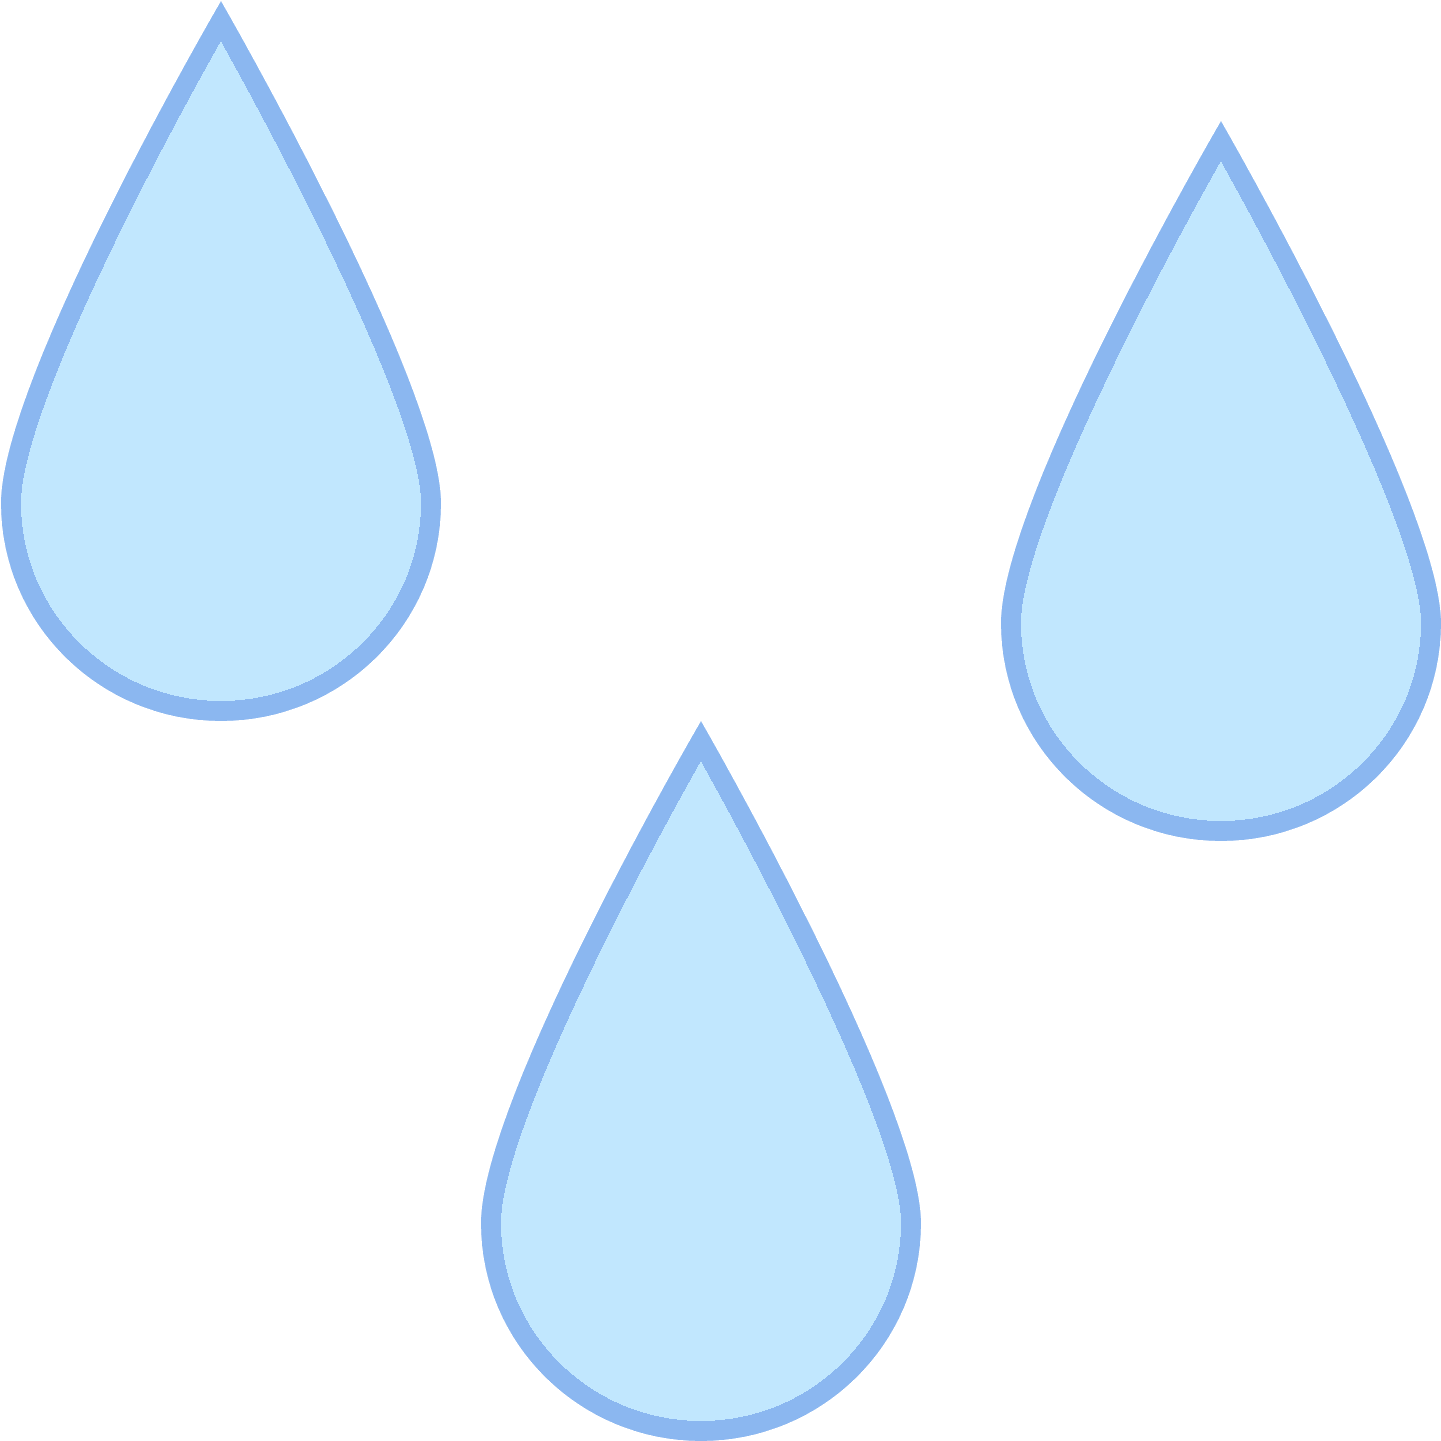 Droplets clipart three water. Download there are outlined